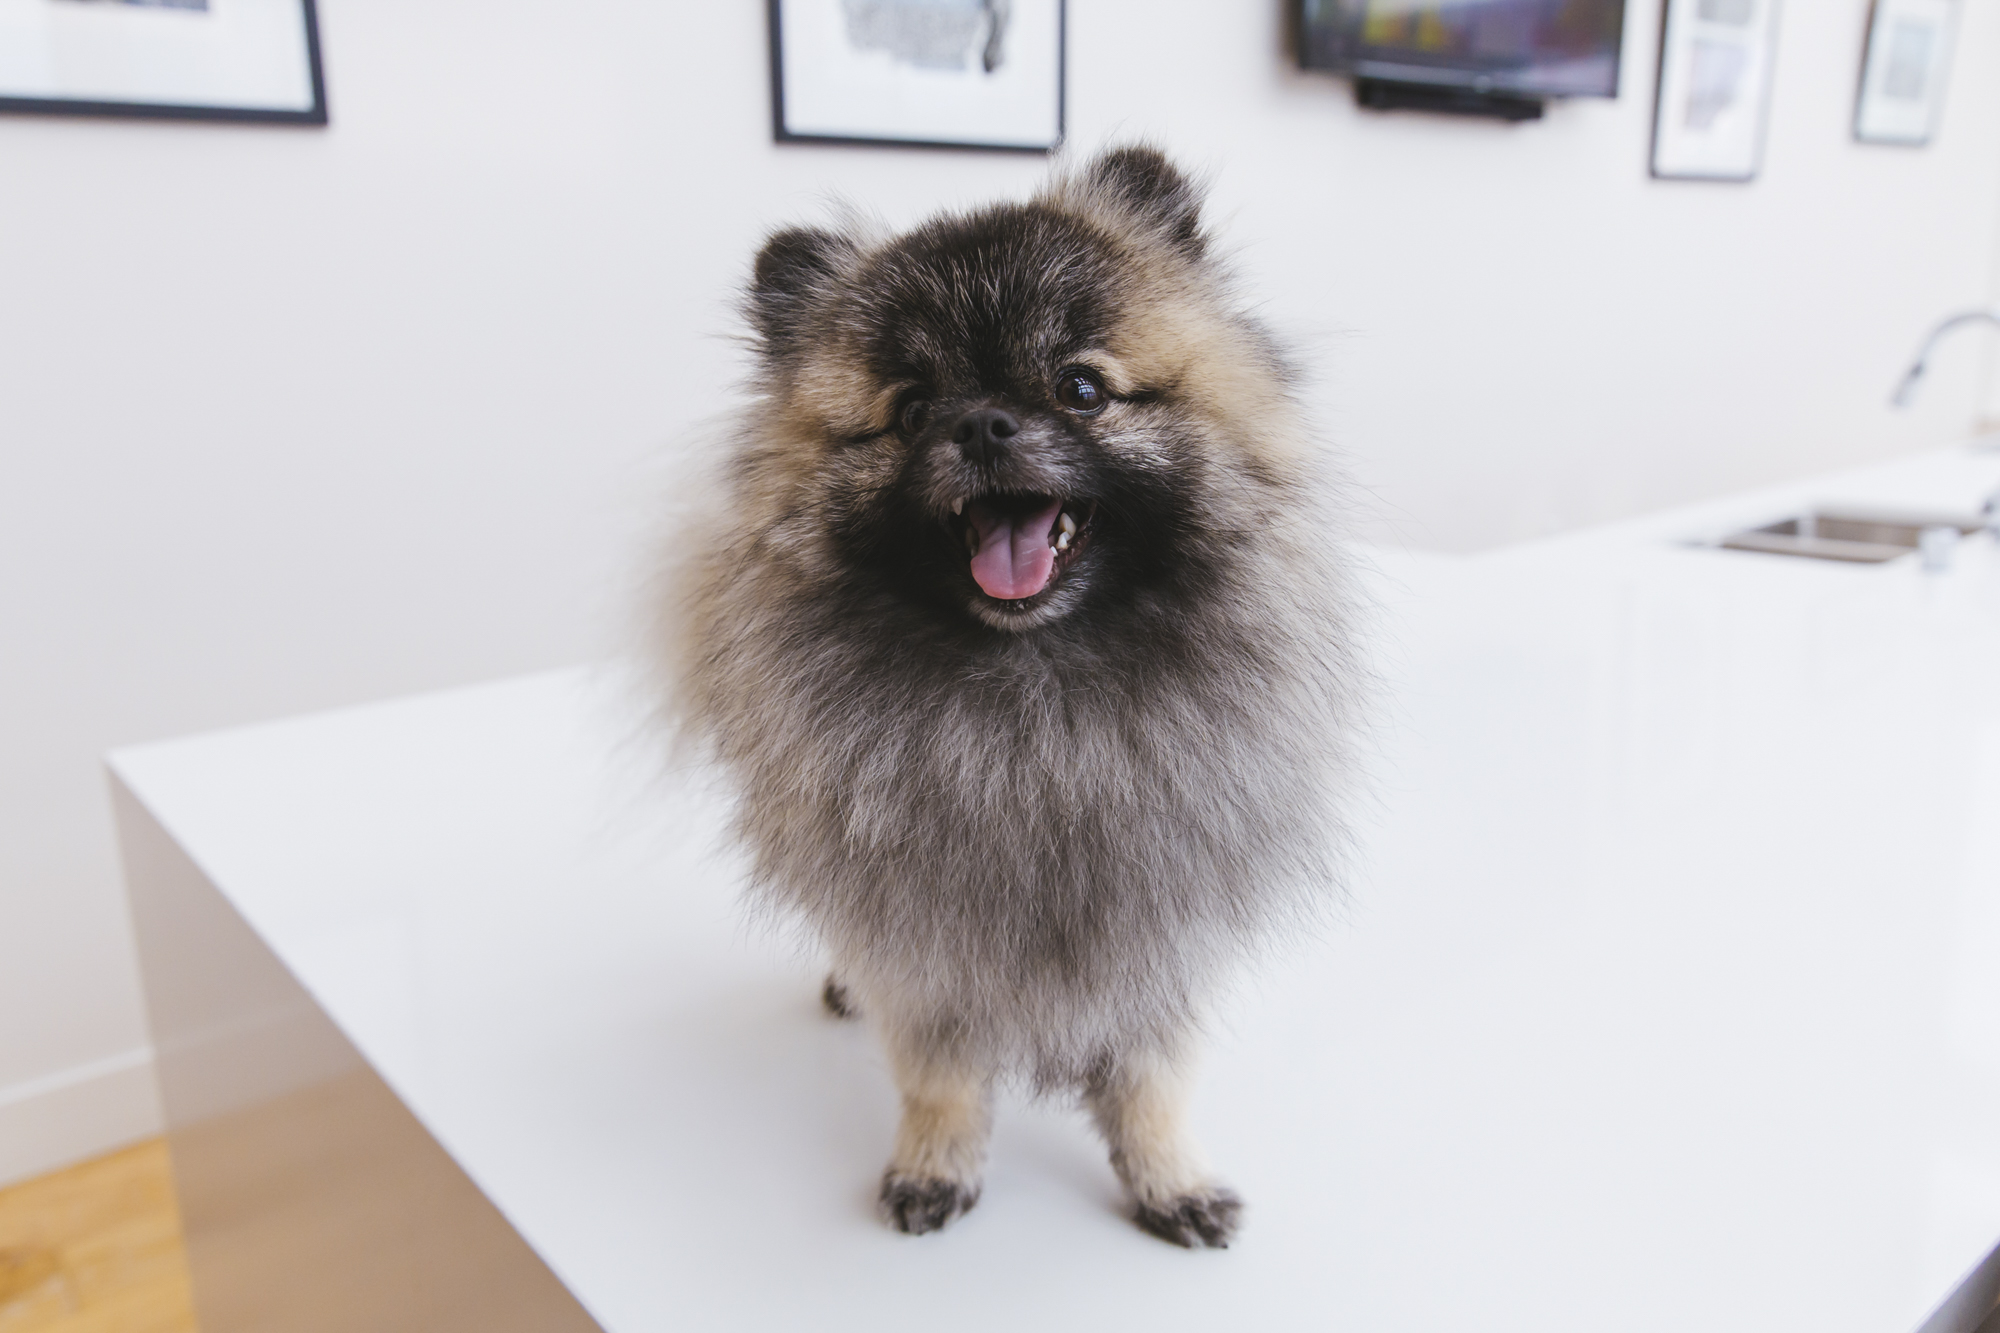 <p>OMG PEPPERJACK IS THE CHEESE BALL EVERYONE DESERVES! Meet Pepperjack, this beautiful one-year-old Pomeranian who was rescued from South Korea by an organization based in New Jersey. He took the international trek to Seattle and can be found strolling around South Lake Union and going to work at Amazon HQ. When he's not prancing around town, Pepperjack loves hanging with his fellow Poms at Pomeranian meetups (swoooon, how can we go to one of those?).{&amp;nbsp;} Pepperjack loves cheese, outdoor adventures, belly rubs, veggies, napping and puppucinos. He dislikes vacuums and getting groomed. You can follow PJ's journey through life on instagram @pepperjackthepom.{&amp;nbsp;}The Seattle RUFFined Spotlight is a weekly profile of local pets living and loving life in the PNW. If you or someone you know has a pet you'd like featured, email us at hello@seattlerefined.com or tag #SeattleRUFFined and your furbaby could be the next spotlighted! (Image: Sunita Martini / Seattle Refined).</p>